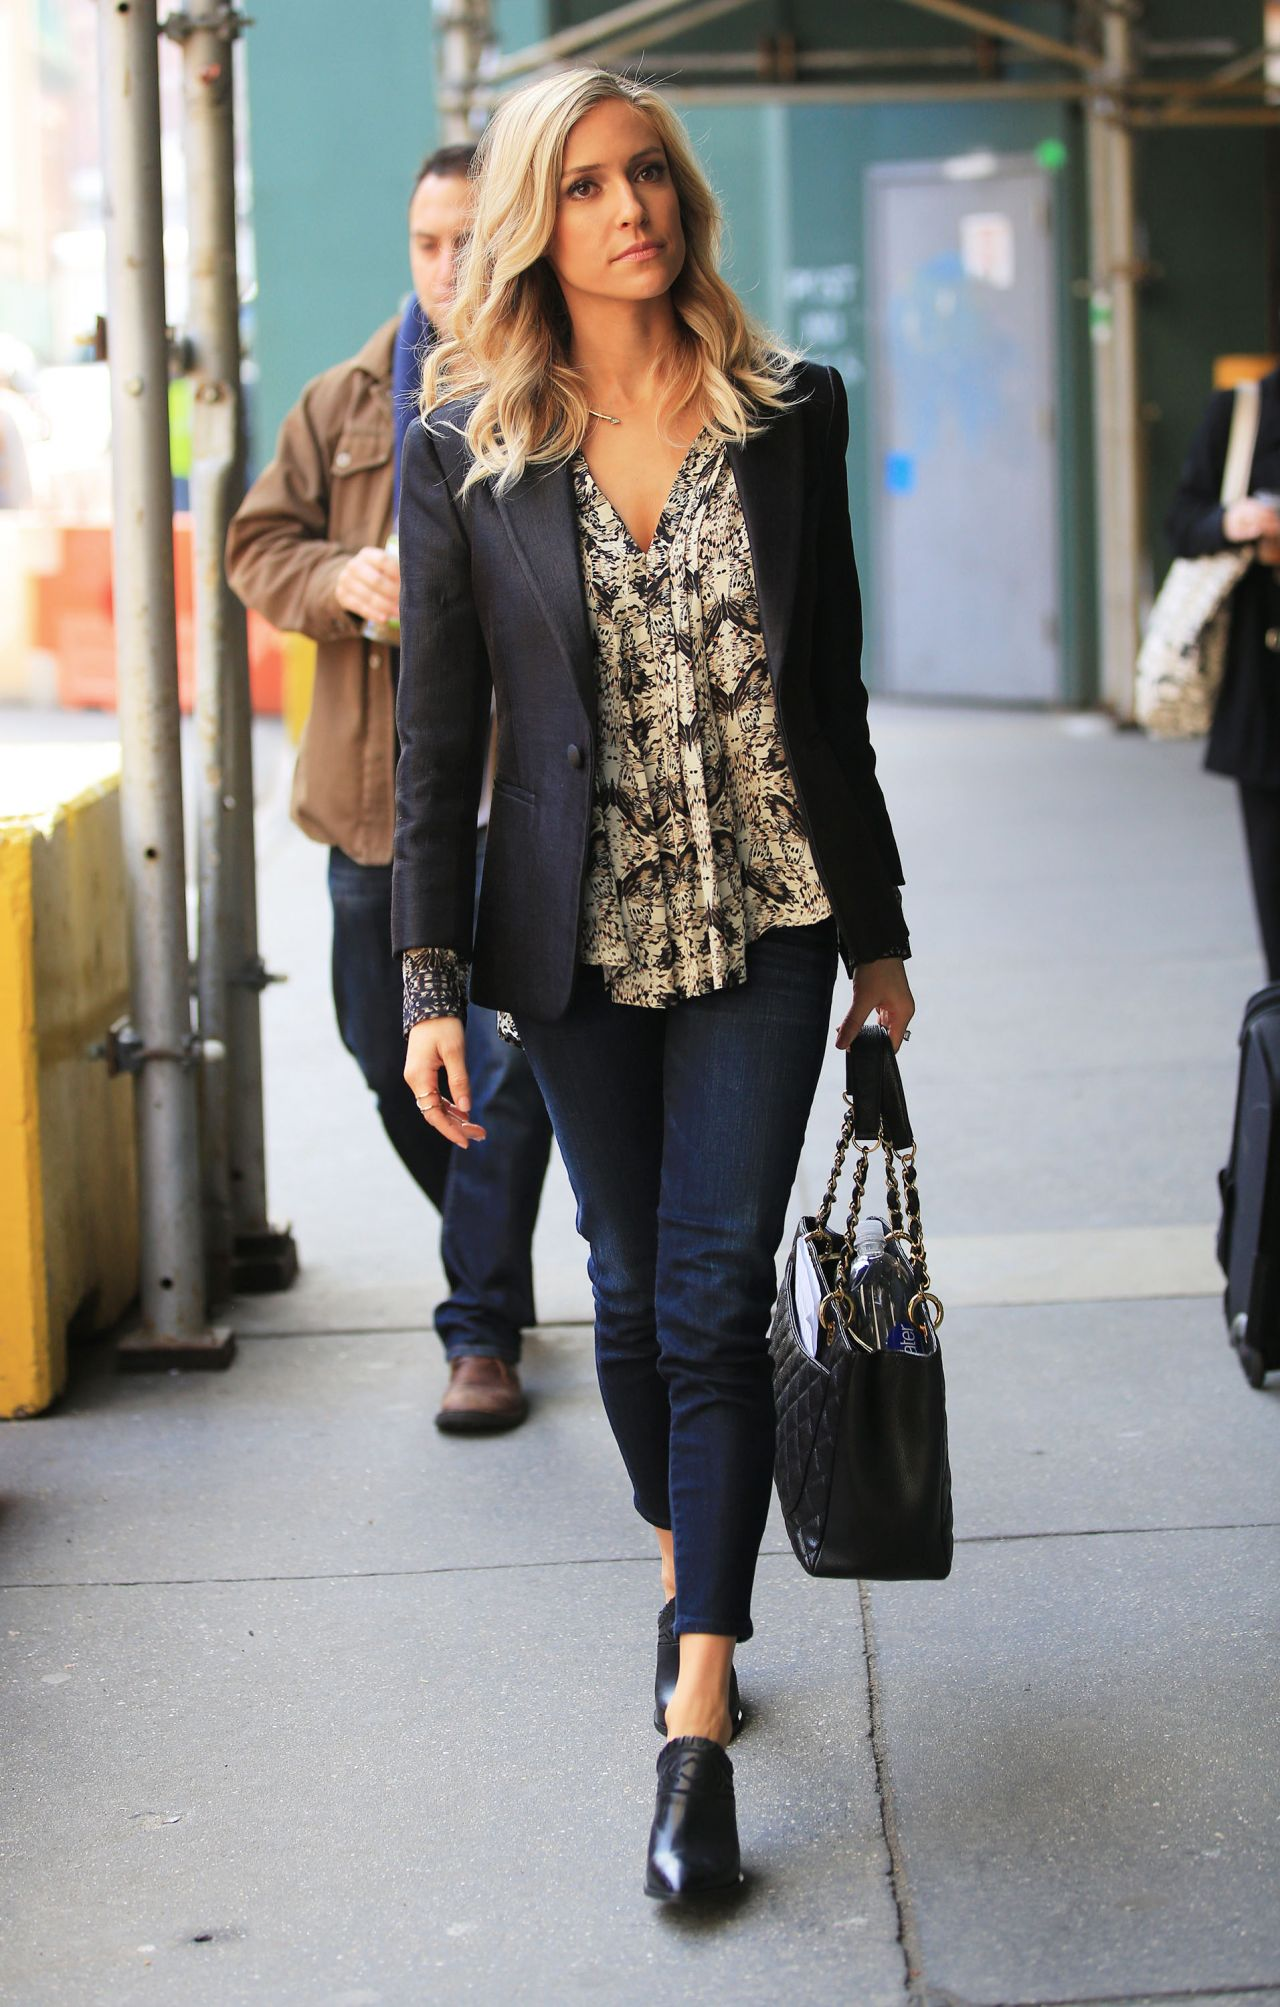 Kristin Cavallari Out Promoting Her Book In New York